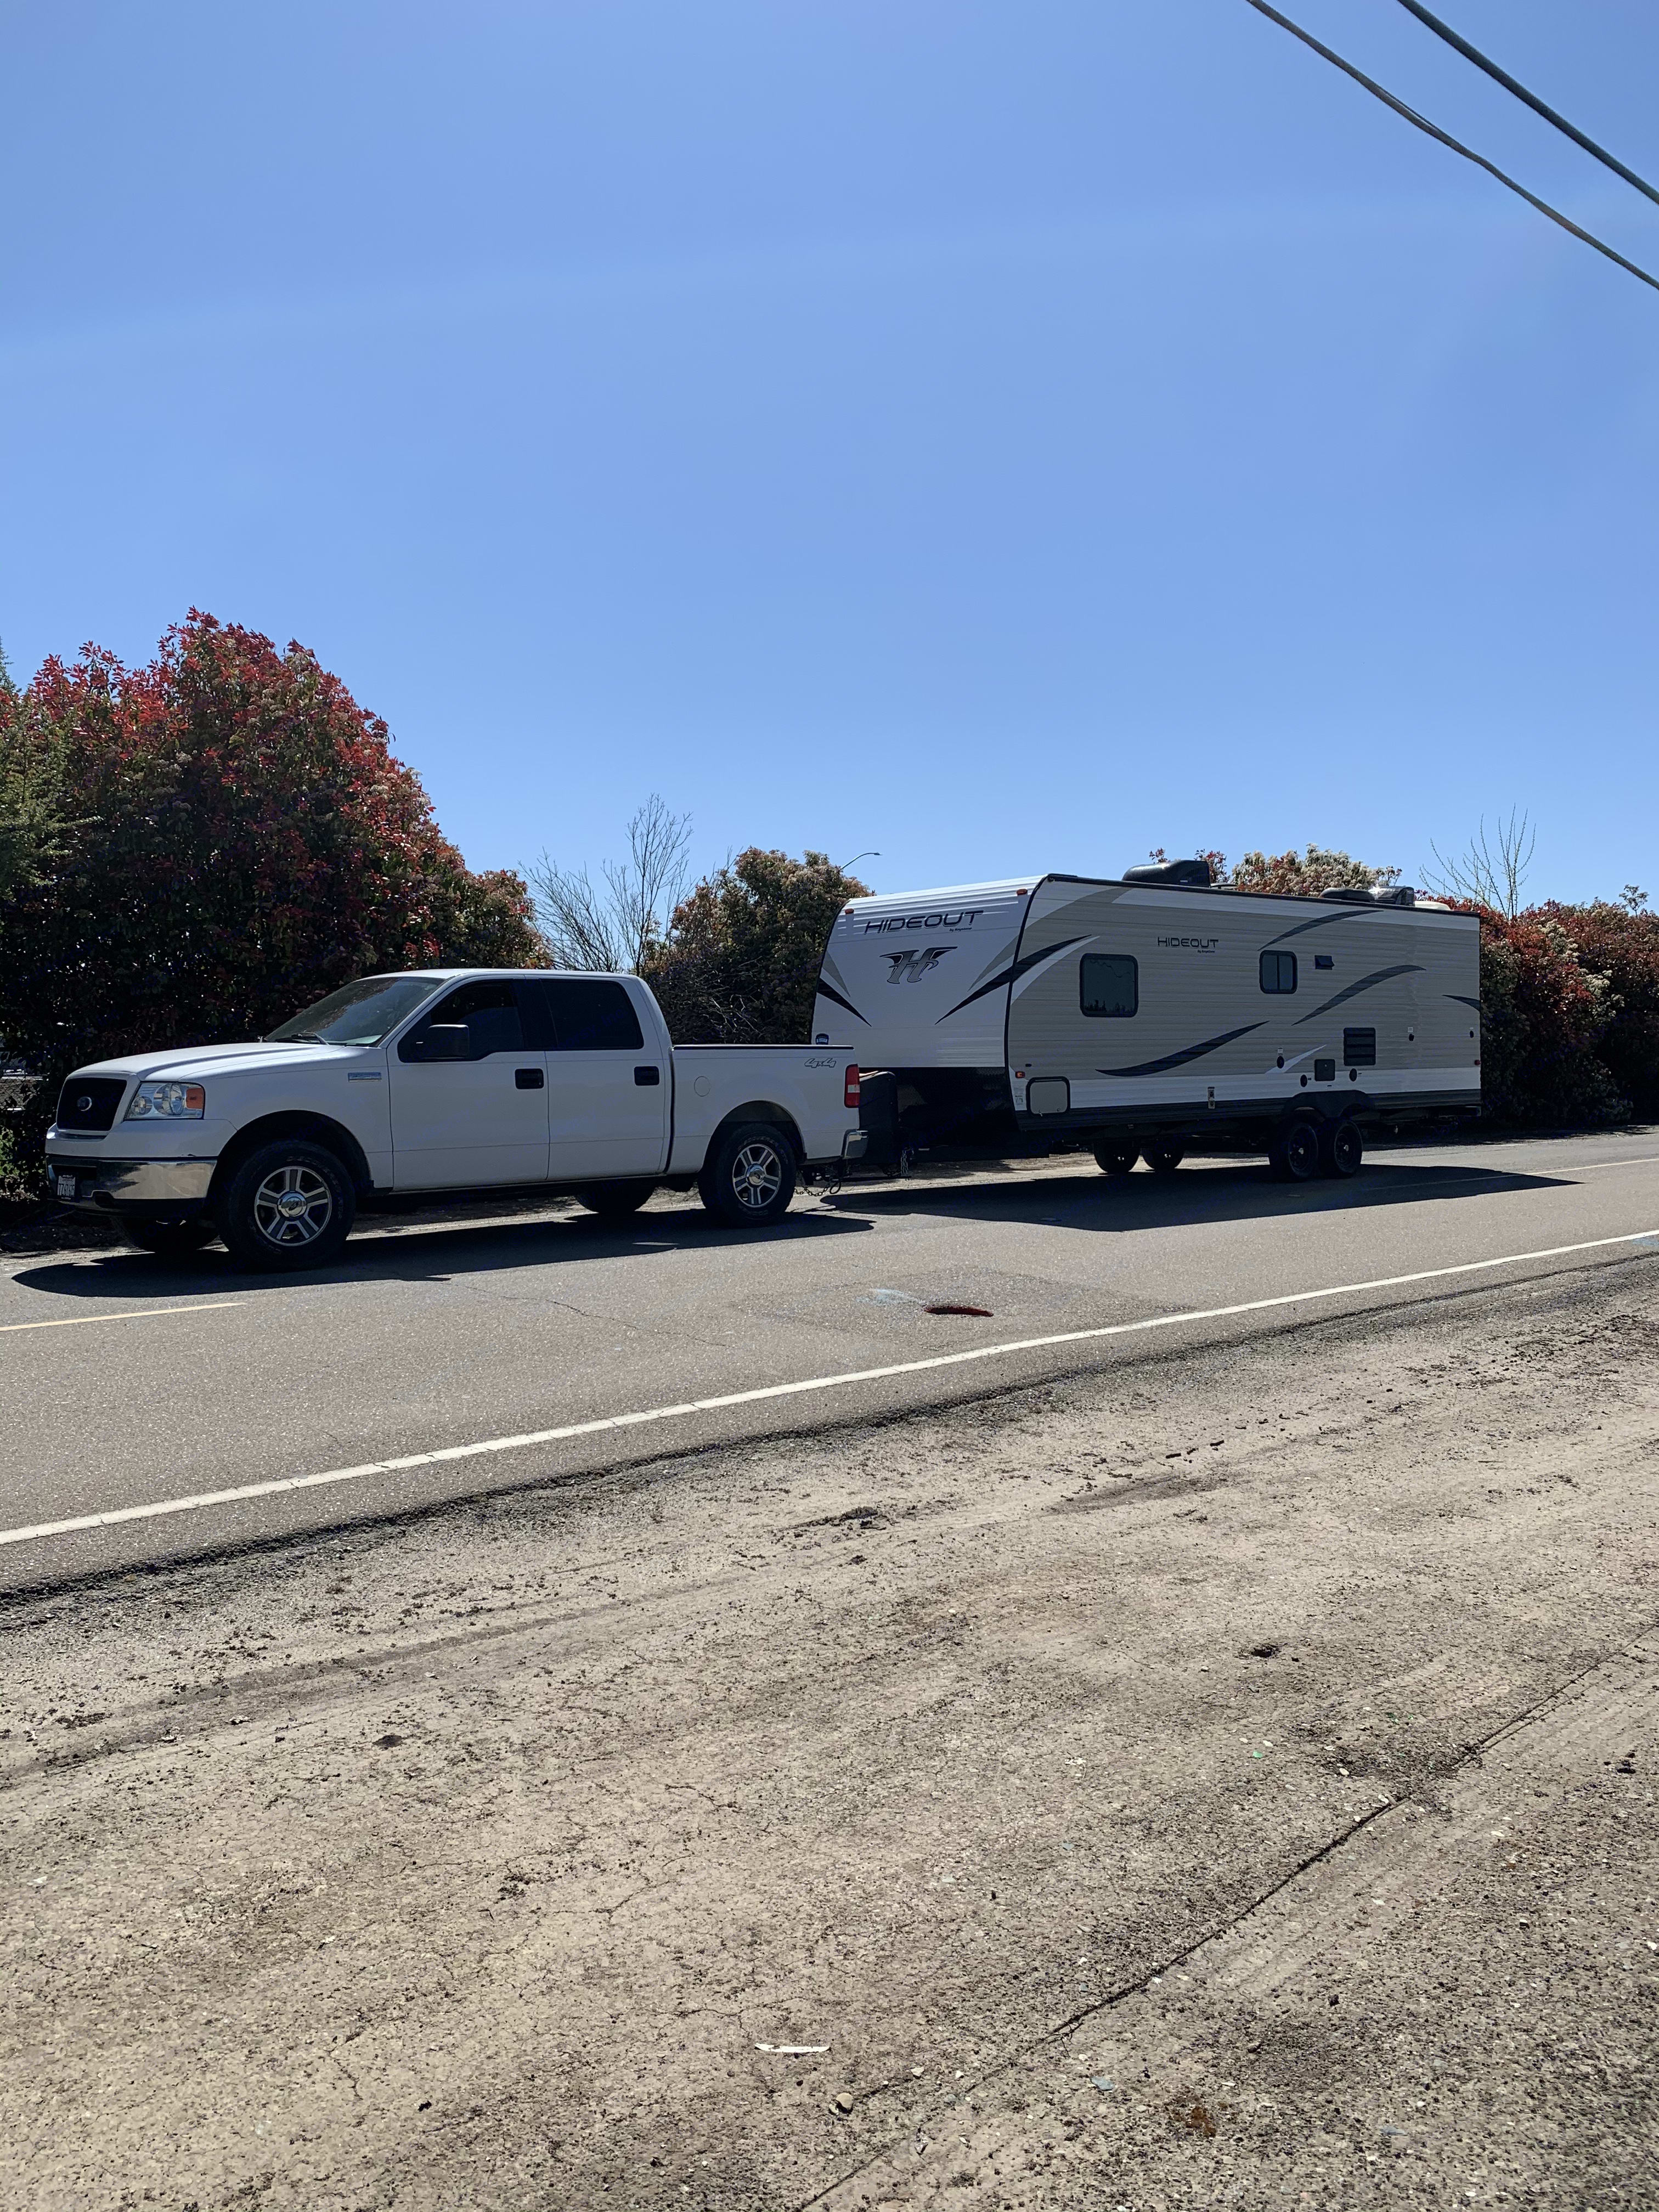 Minimum of a Tundra, f150, or chevrolet/dodge 1500 to pull trailer. Keystone Hideout 2019